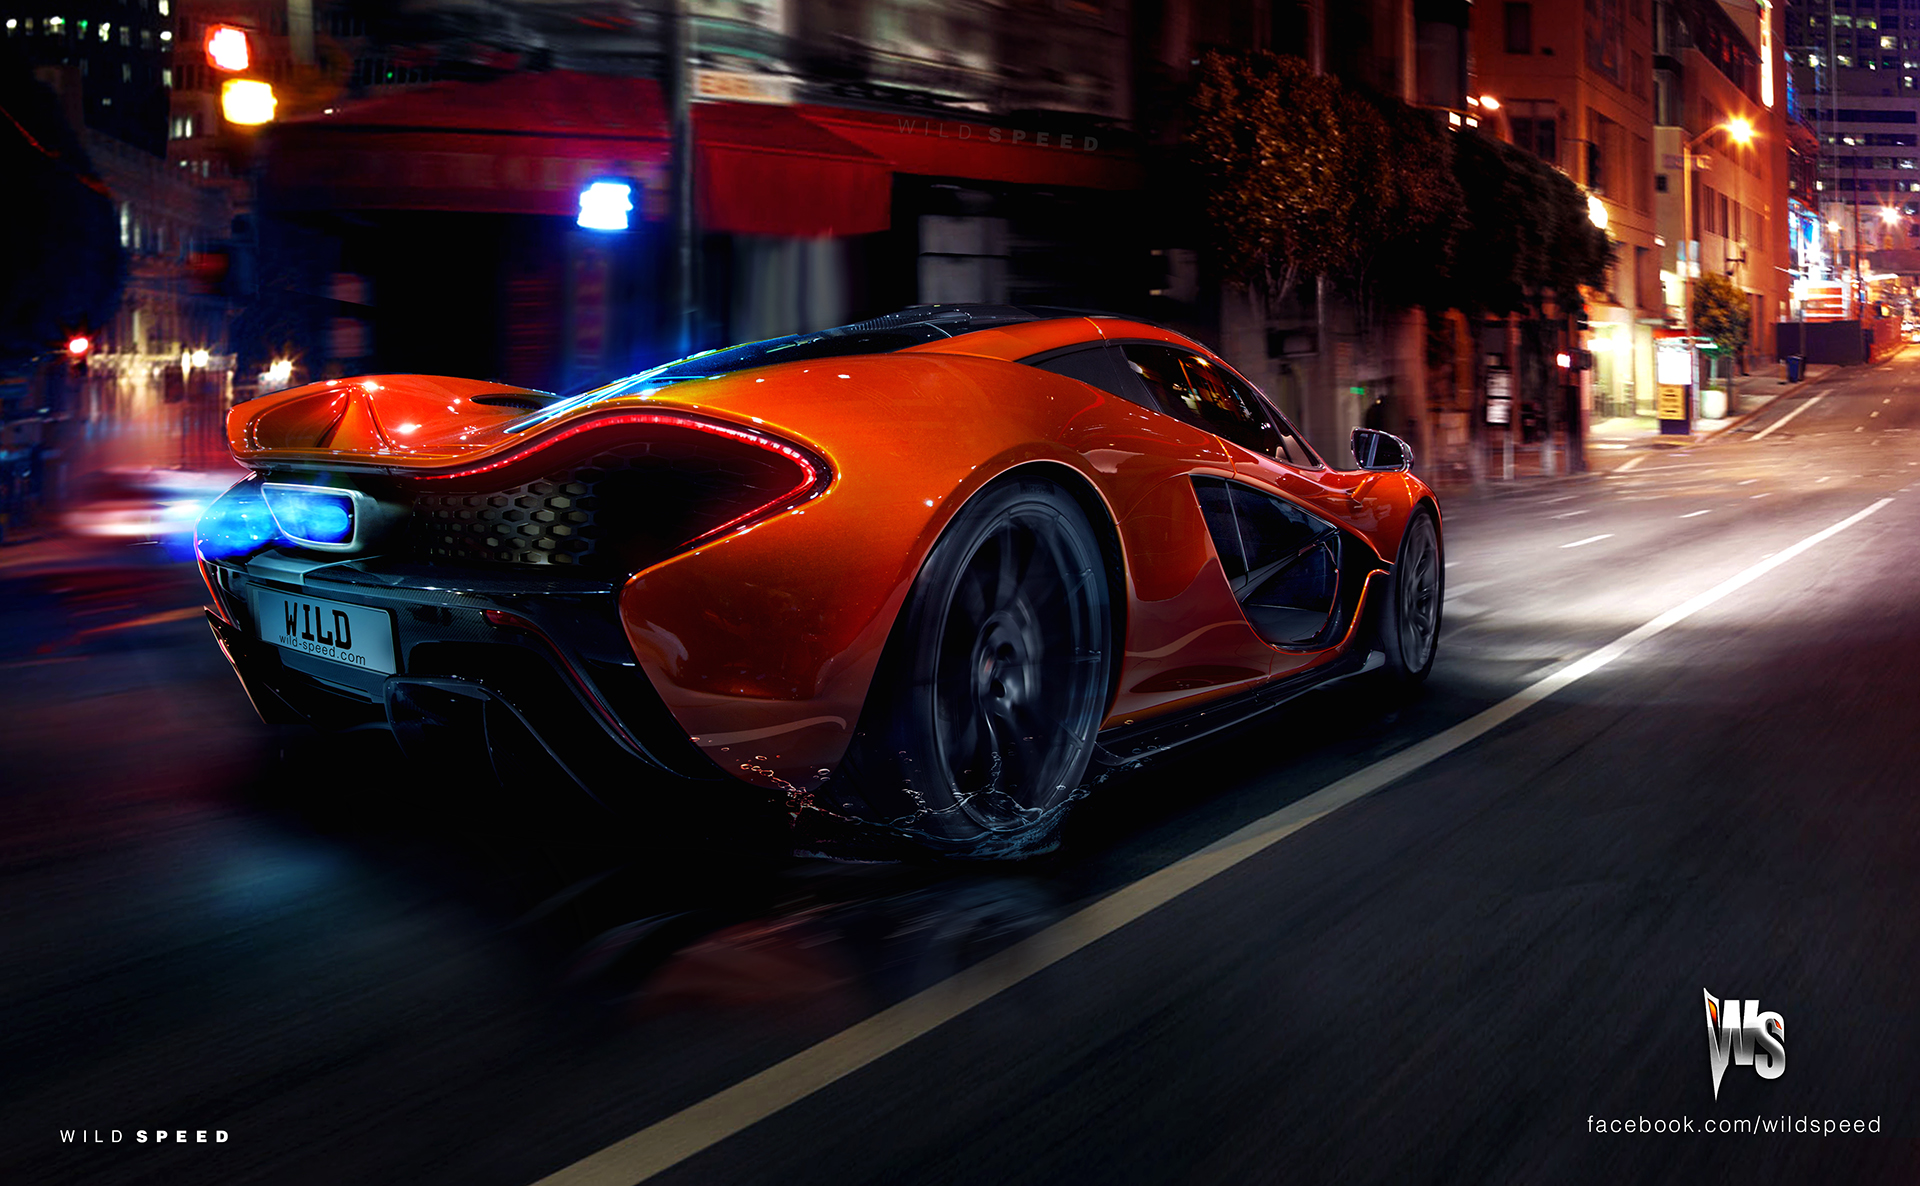 Yellow Mclaren P1 Spitting Flames Looks Extreme